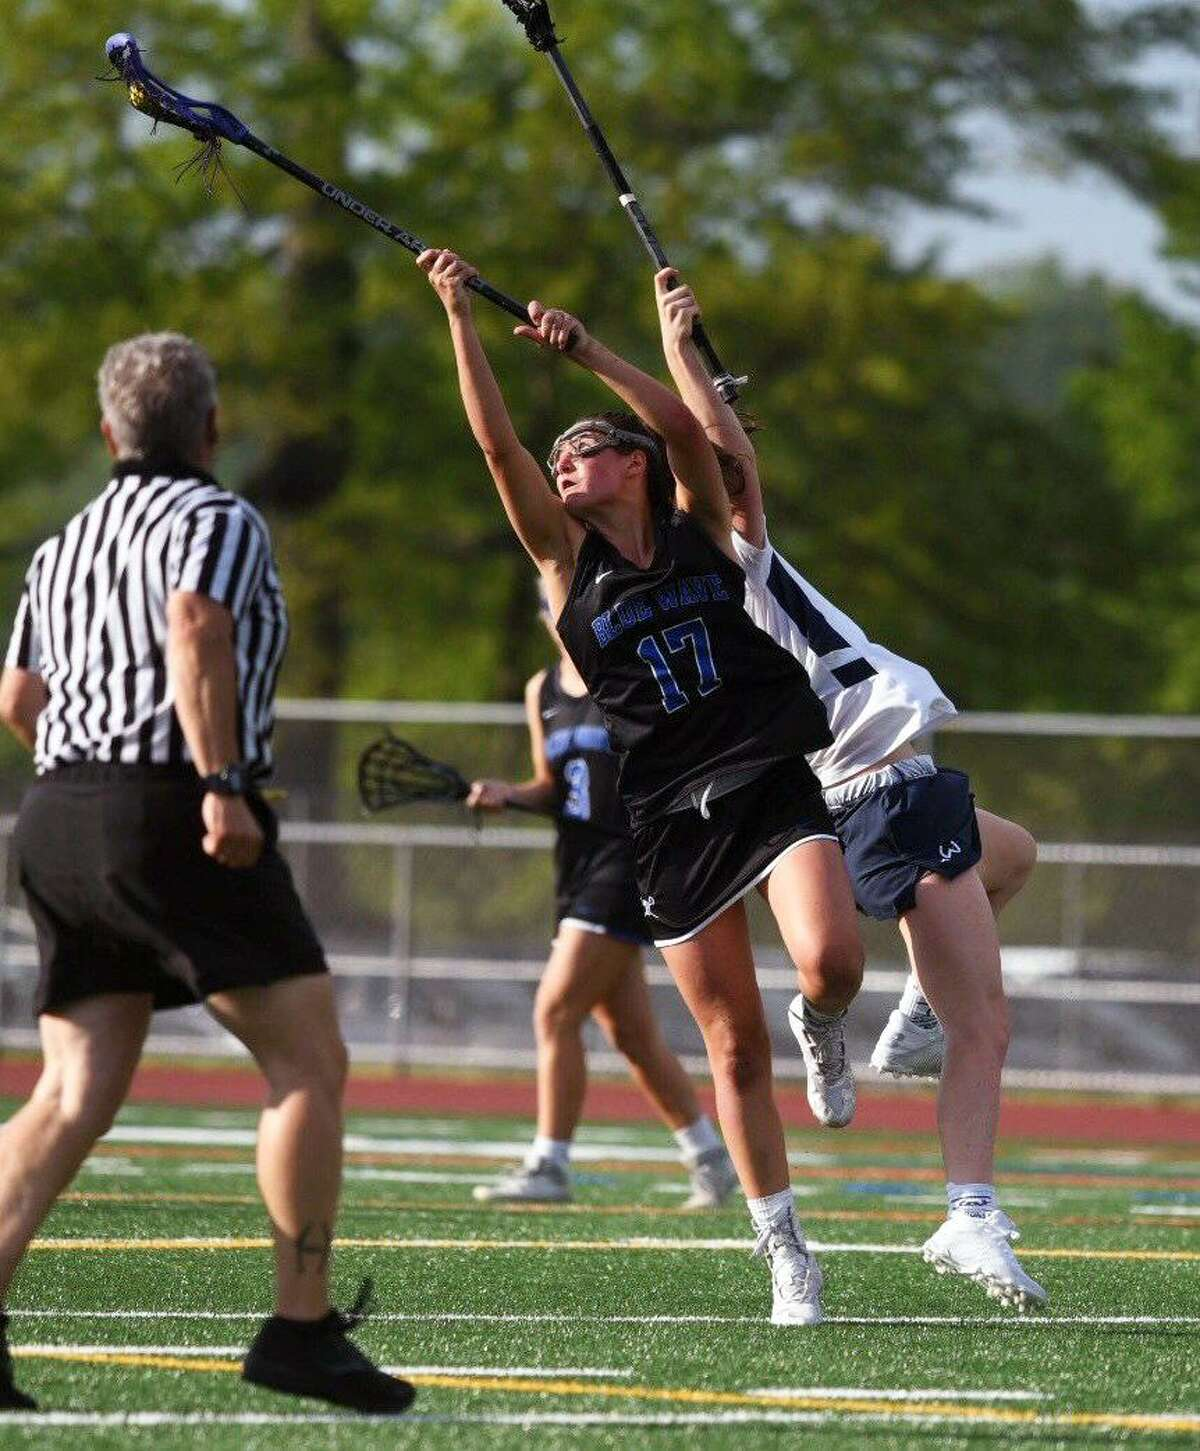 Darien's Sarah Jaques (17) takes to the air to grab a draw during the Wave's FCIAC girls lacrosse semifinal game against Wilton at Testa Field in Norwalk on Monday, May 20, 2019.